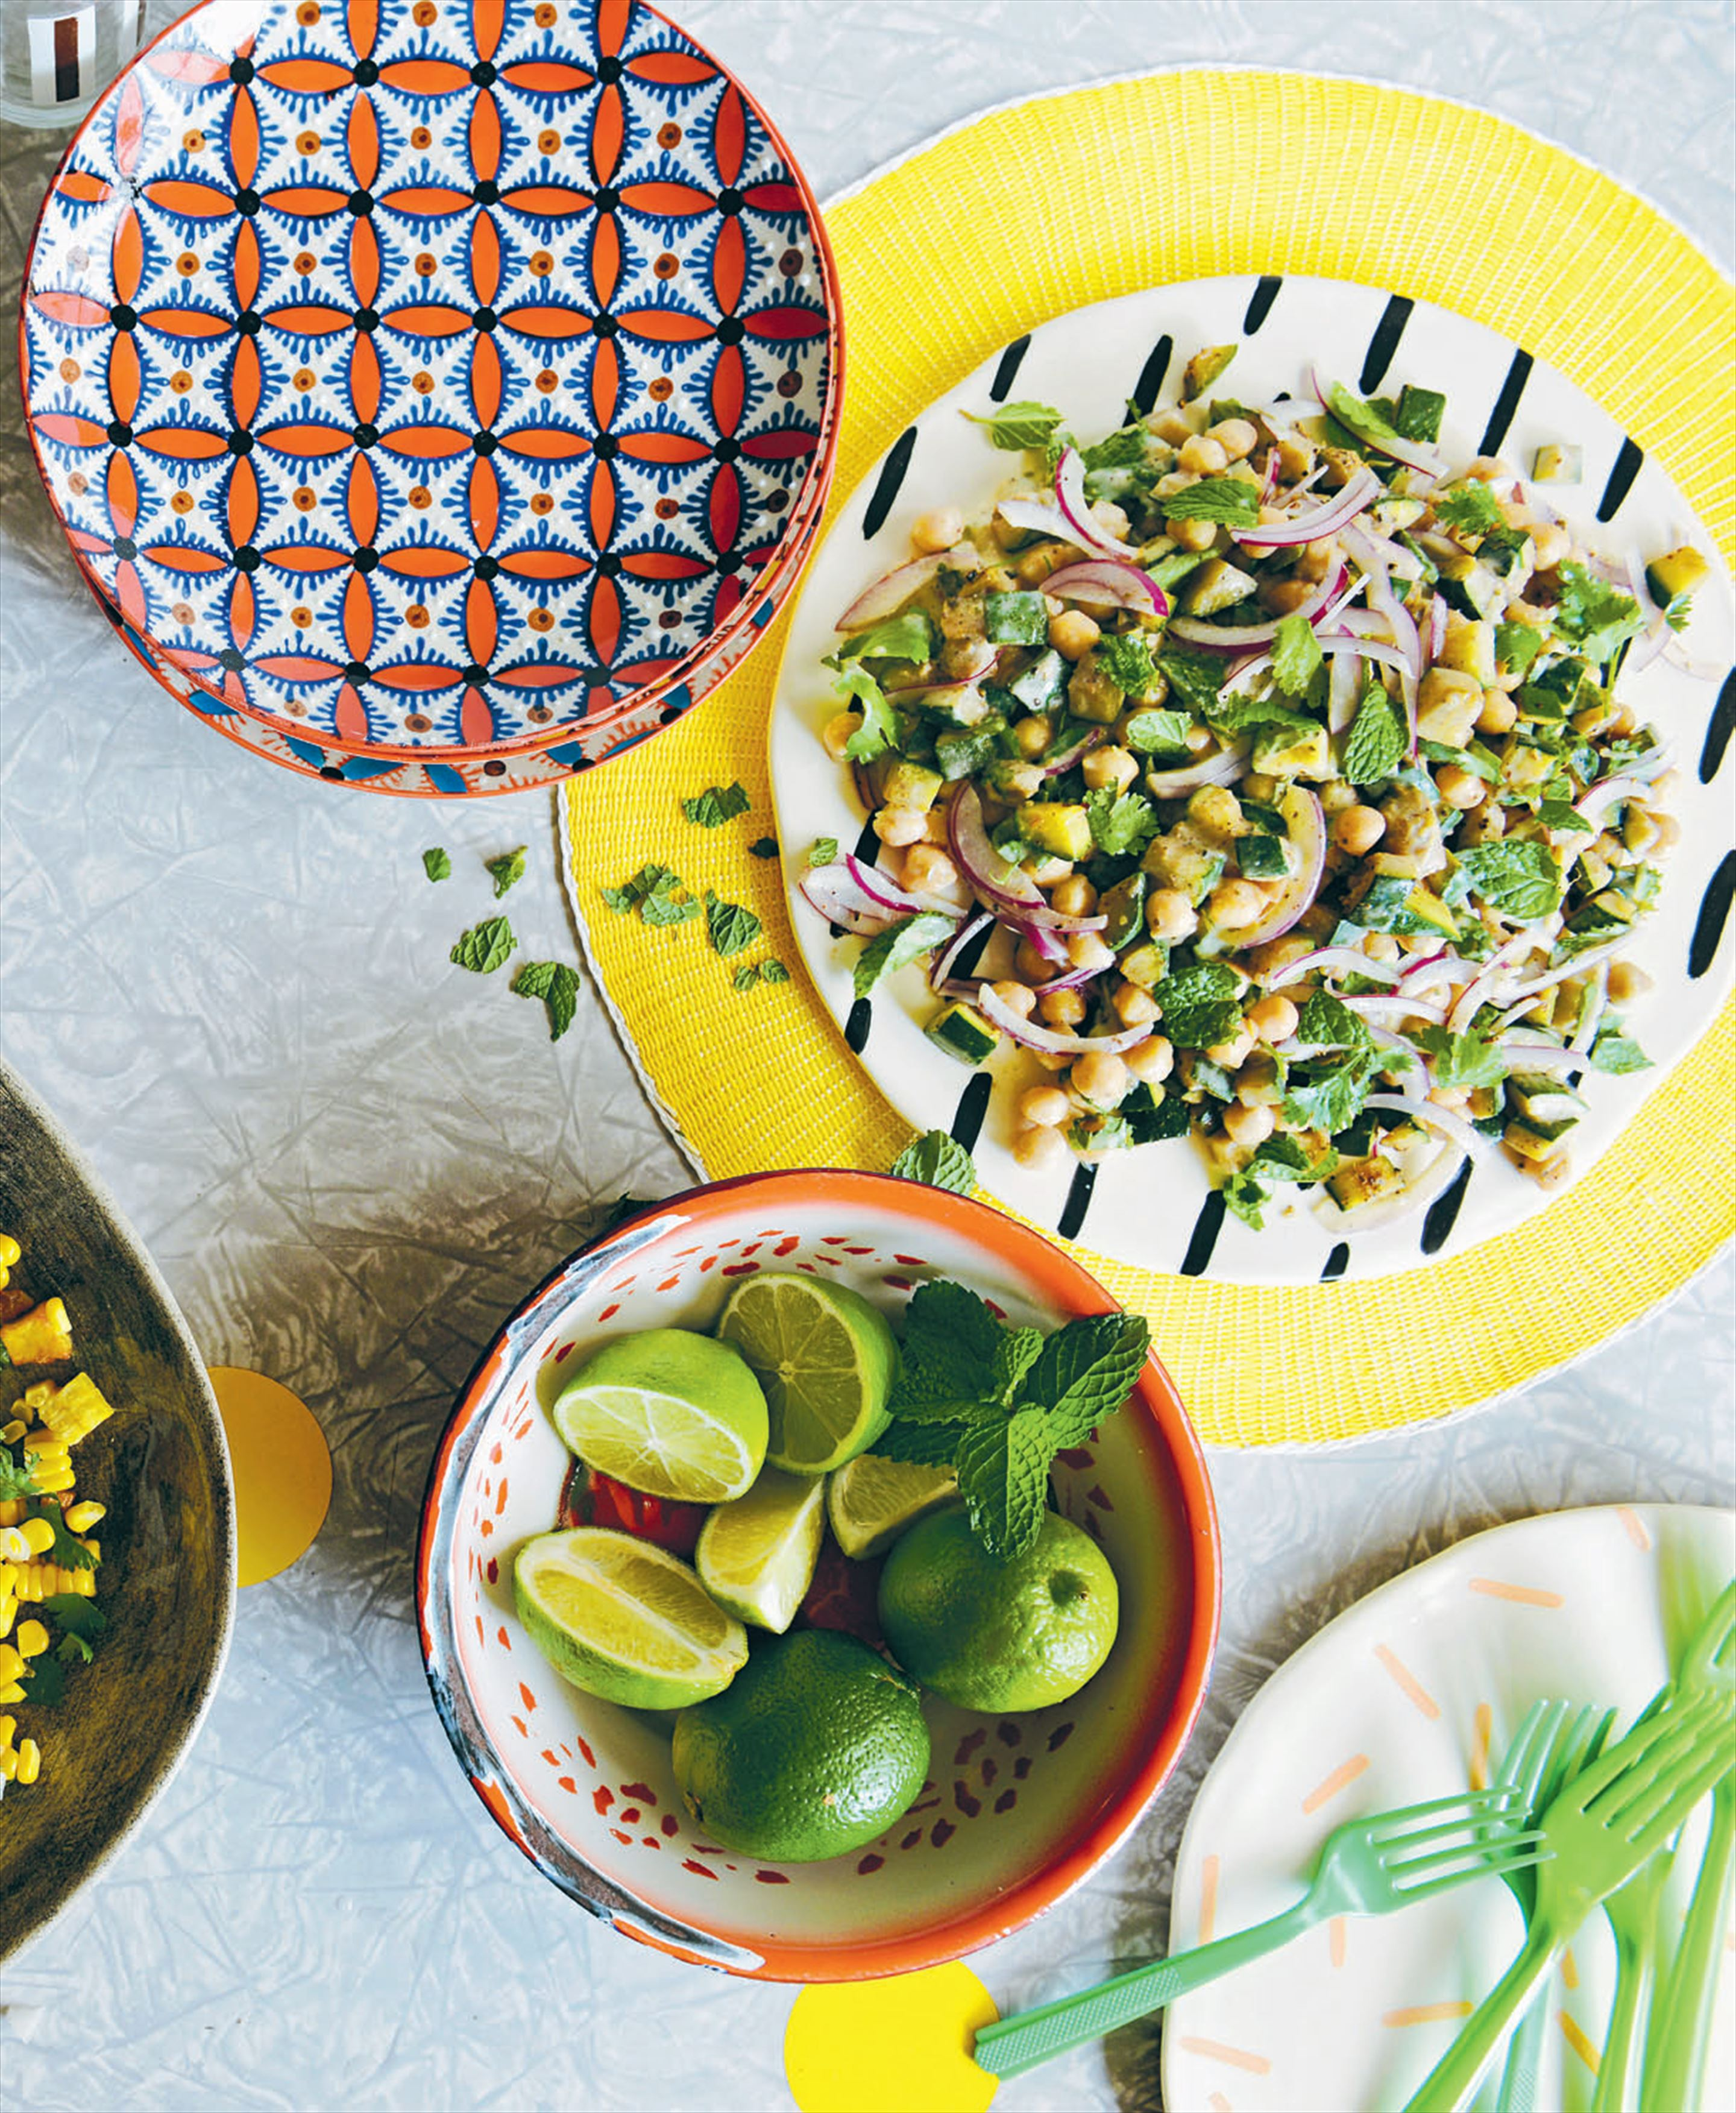 Zucchini and chickpea salad